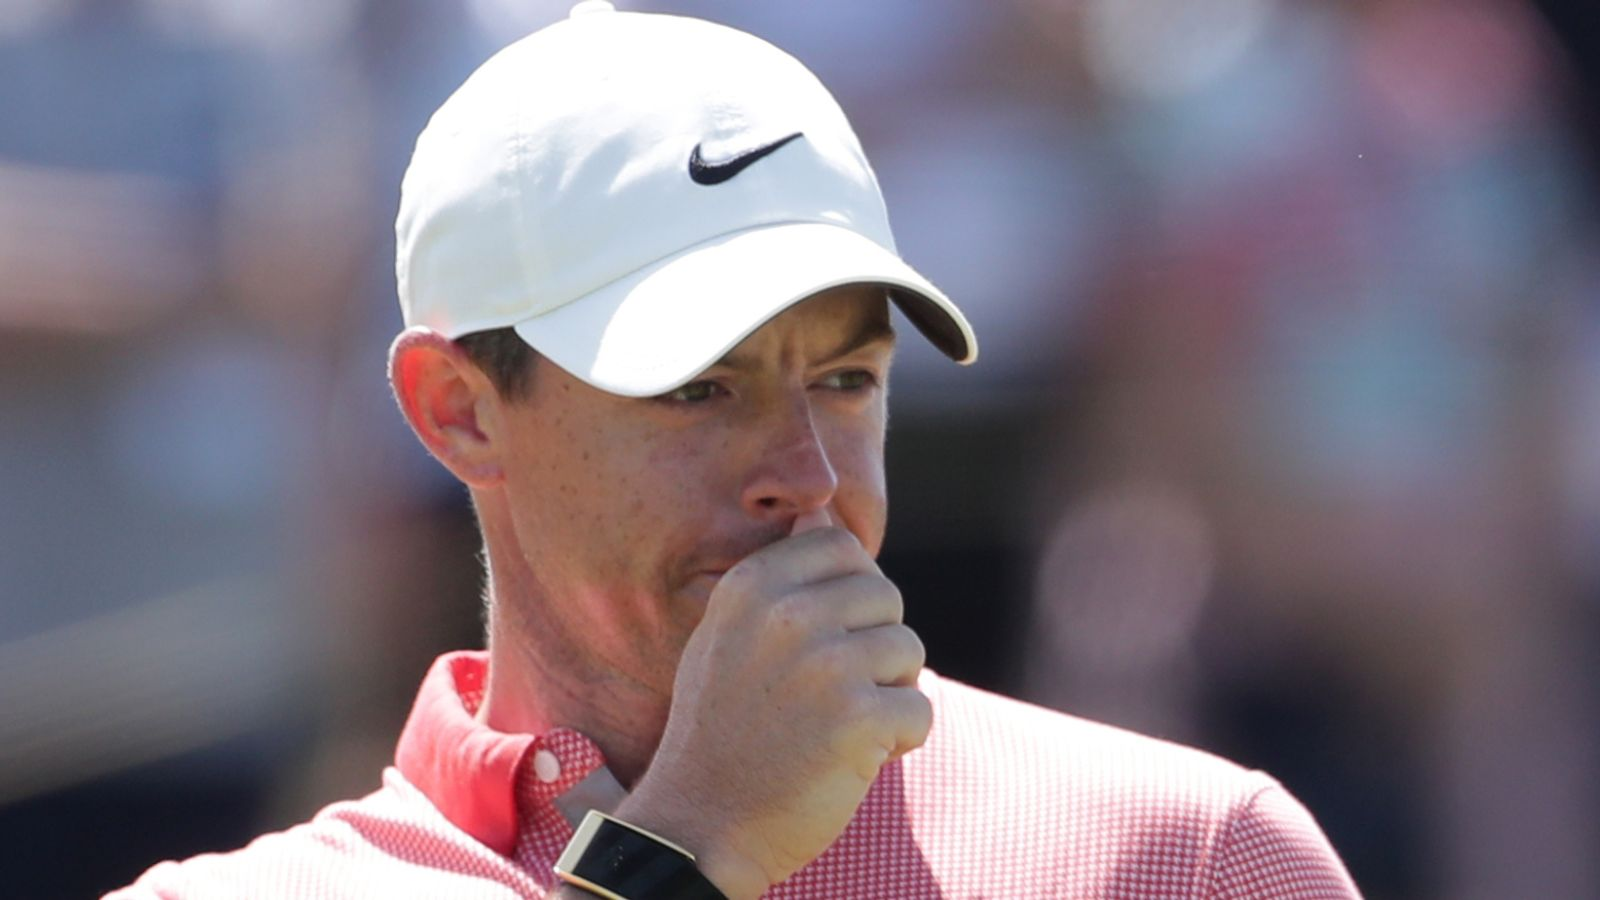 The 149th Open: Rory McIlroy throws club in frustration during error-strewn finish to third round